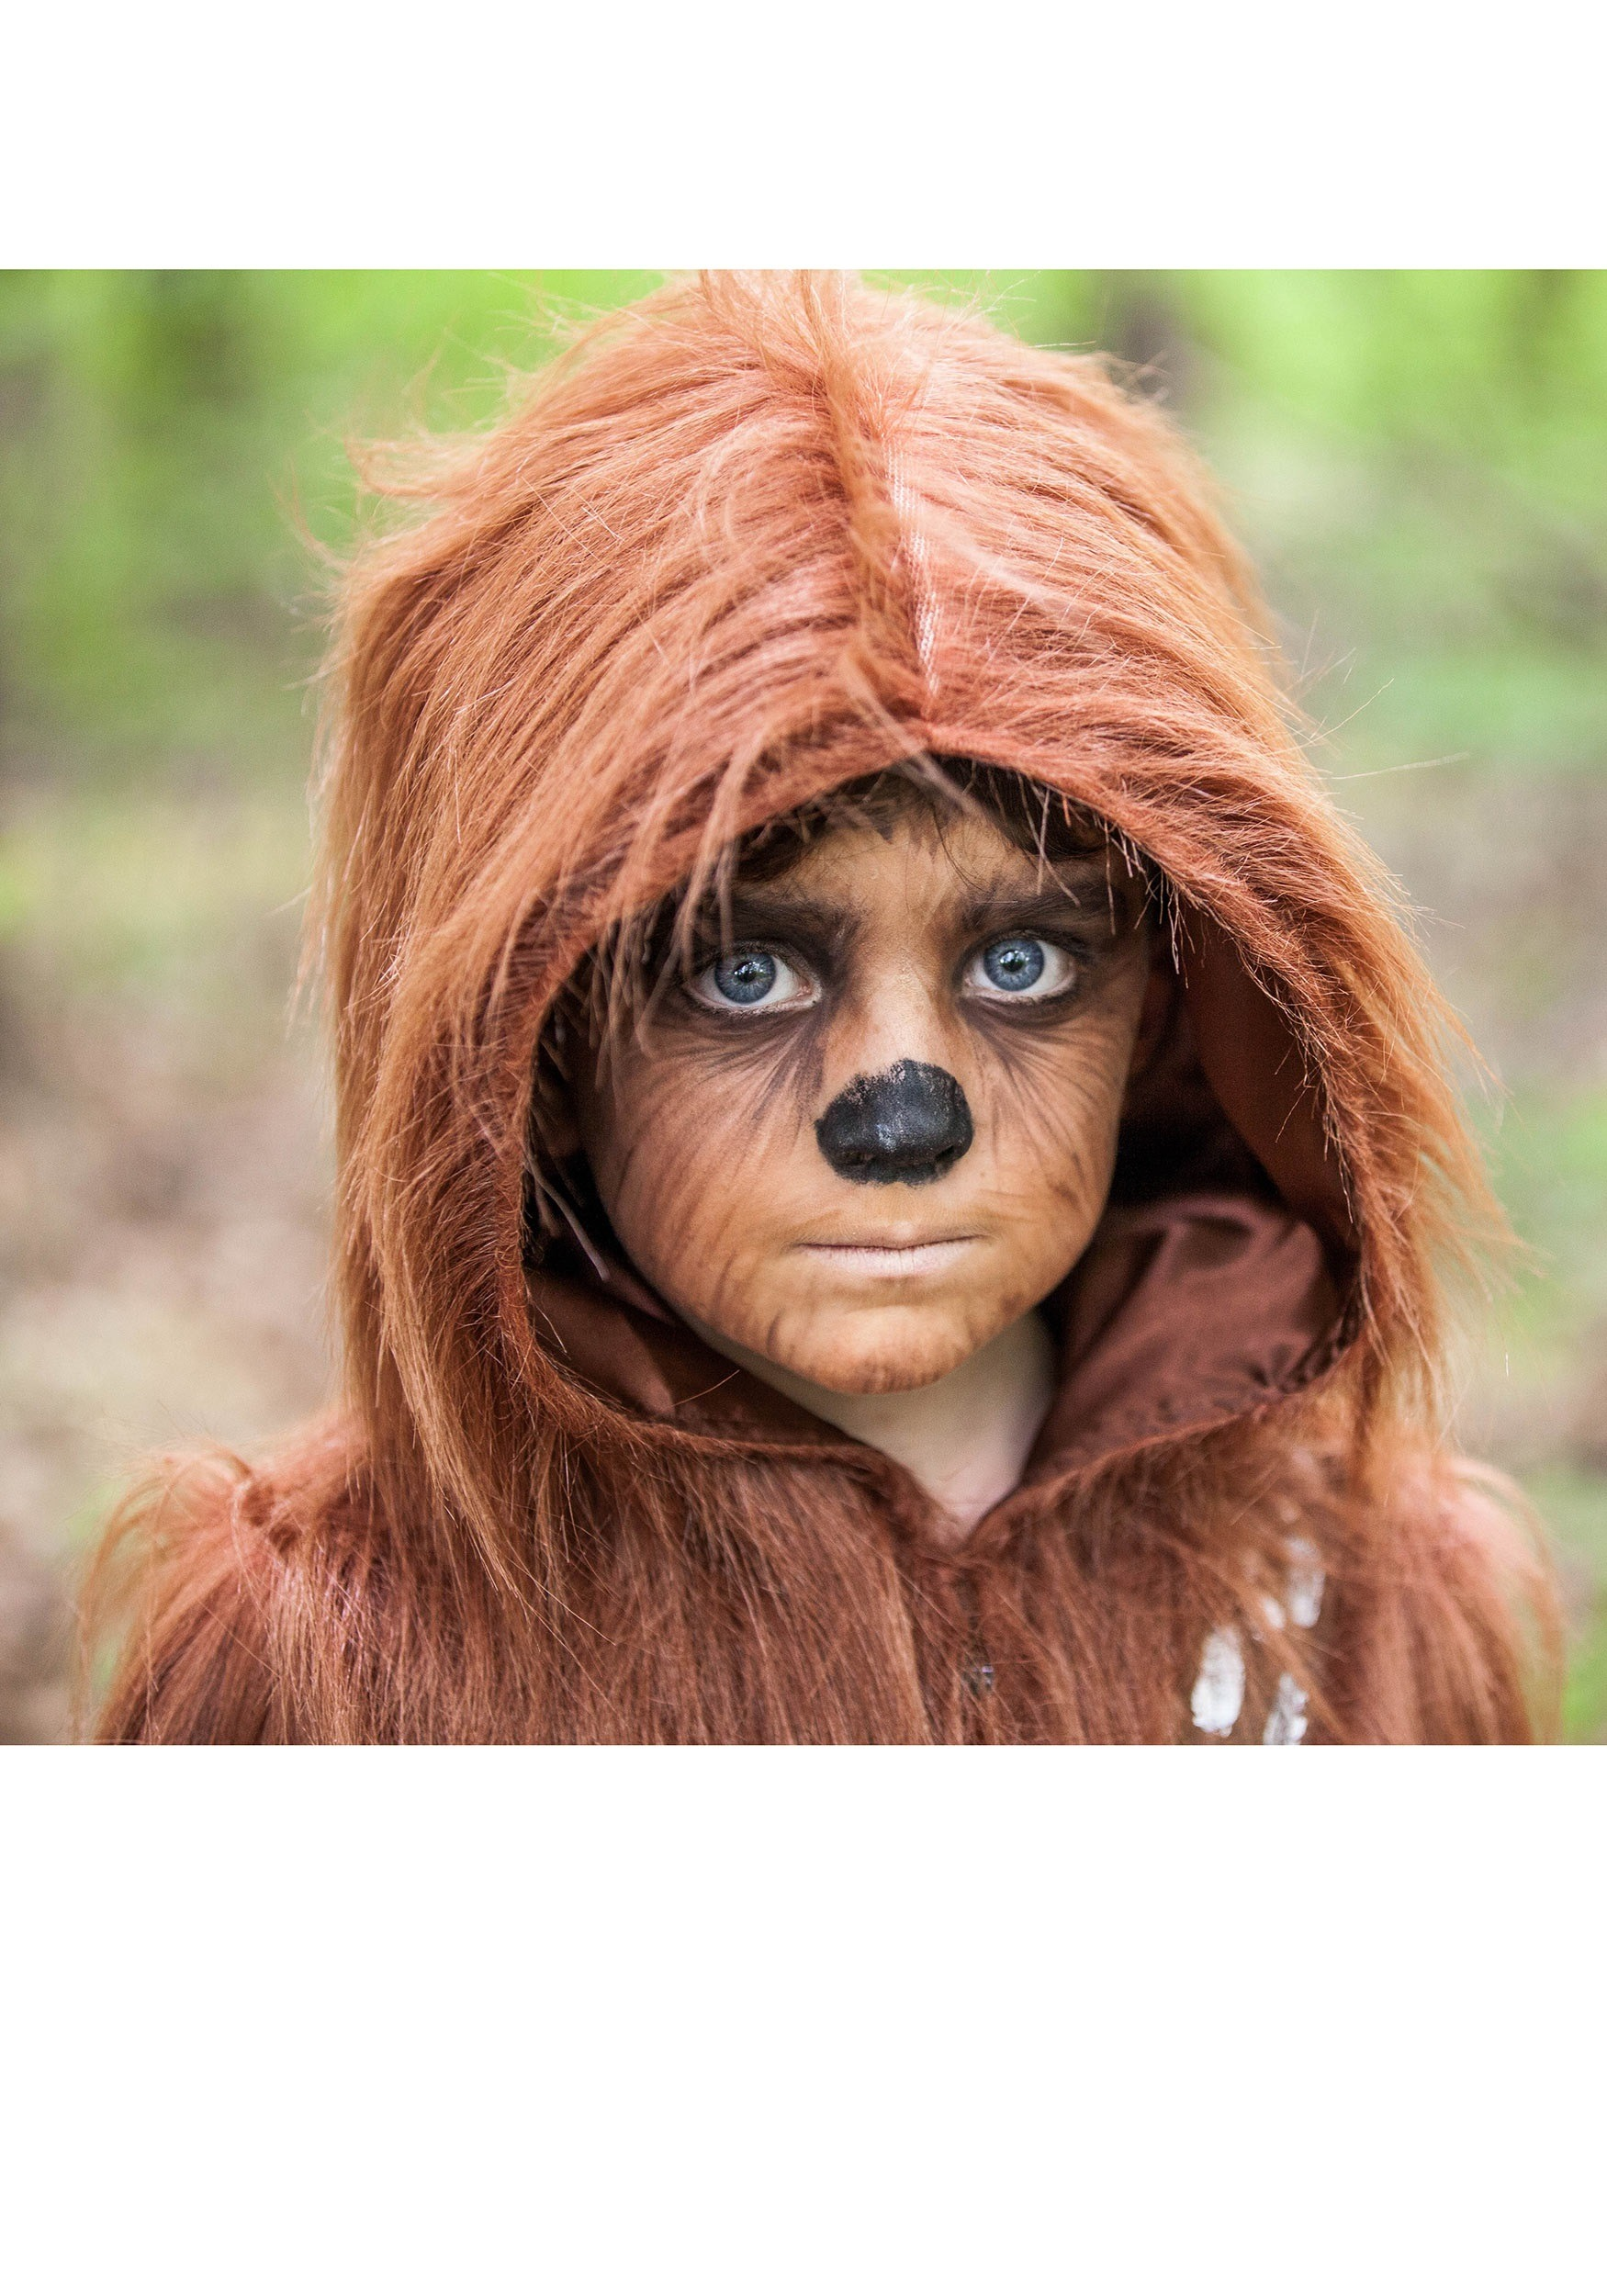 Deluxe Chewbacca Costume For Toddlers  sc 1 st  Hairstly.org & chewbacca makeup | Hairstly.org